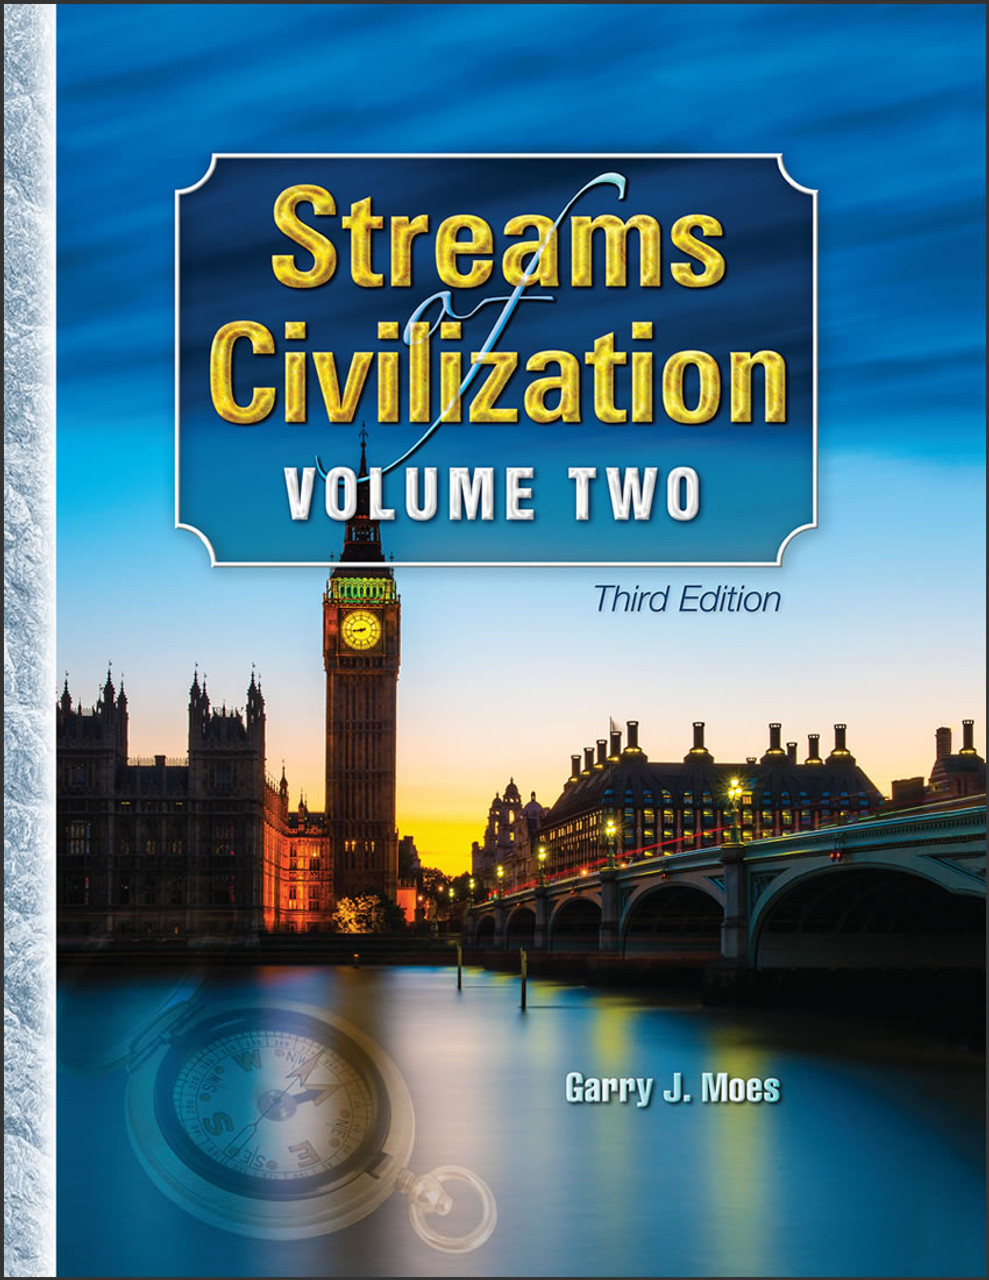 Streams of Civilization, Volume Two, 3rd edition